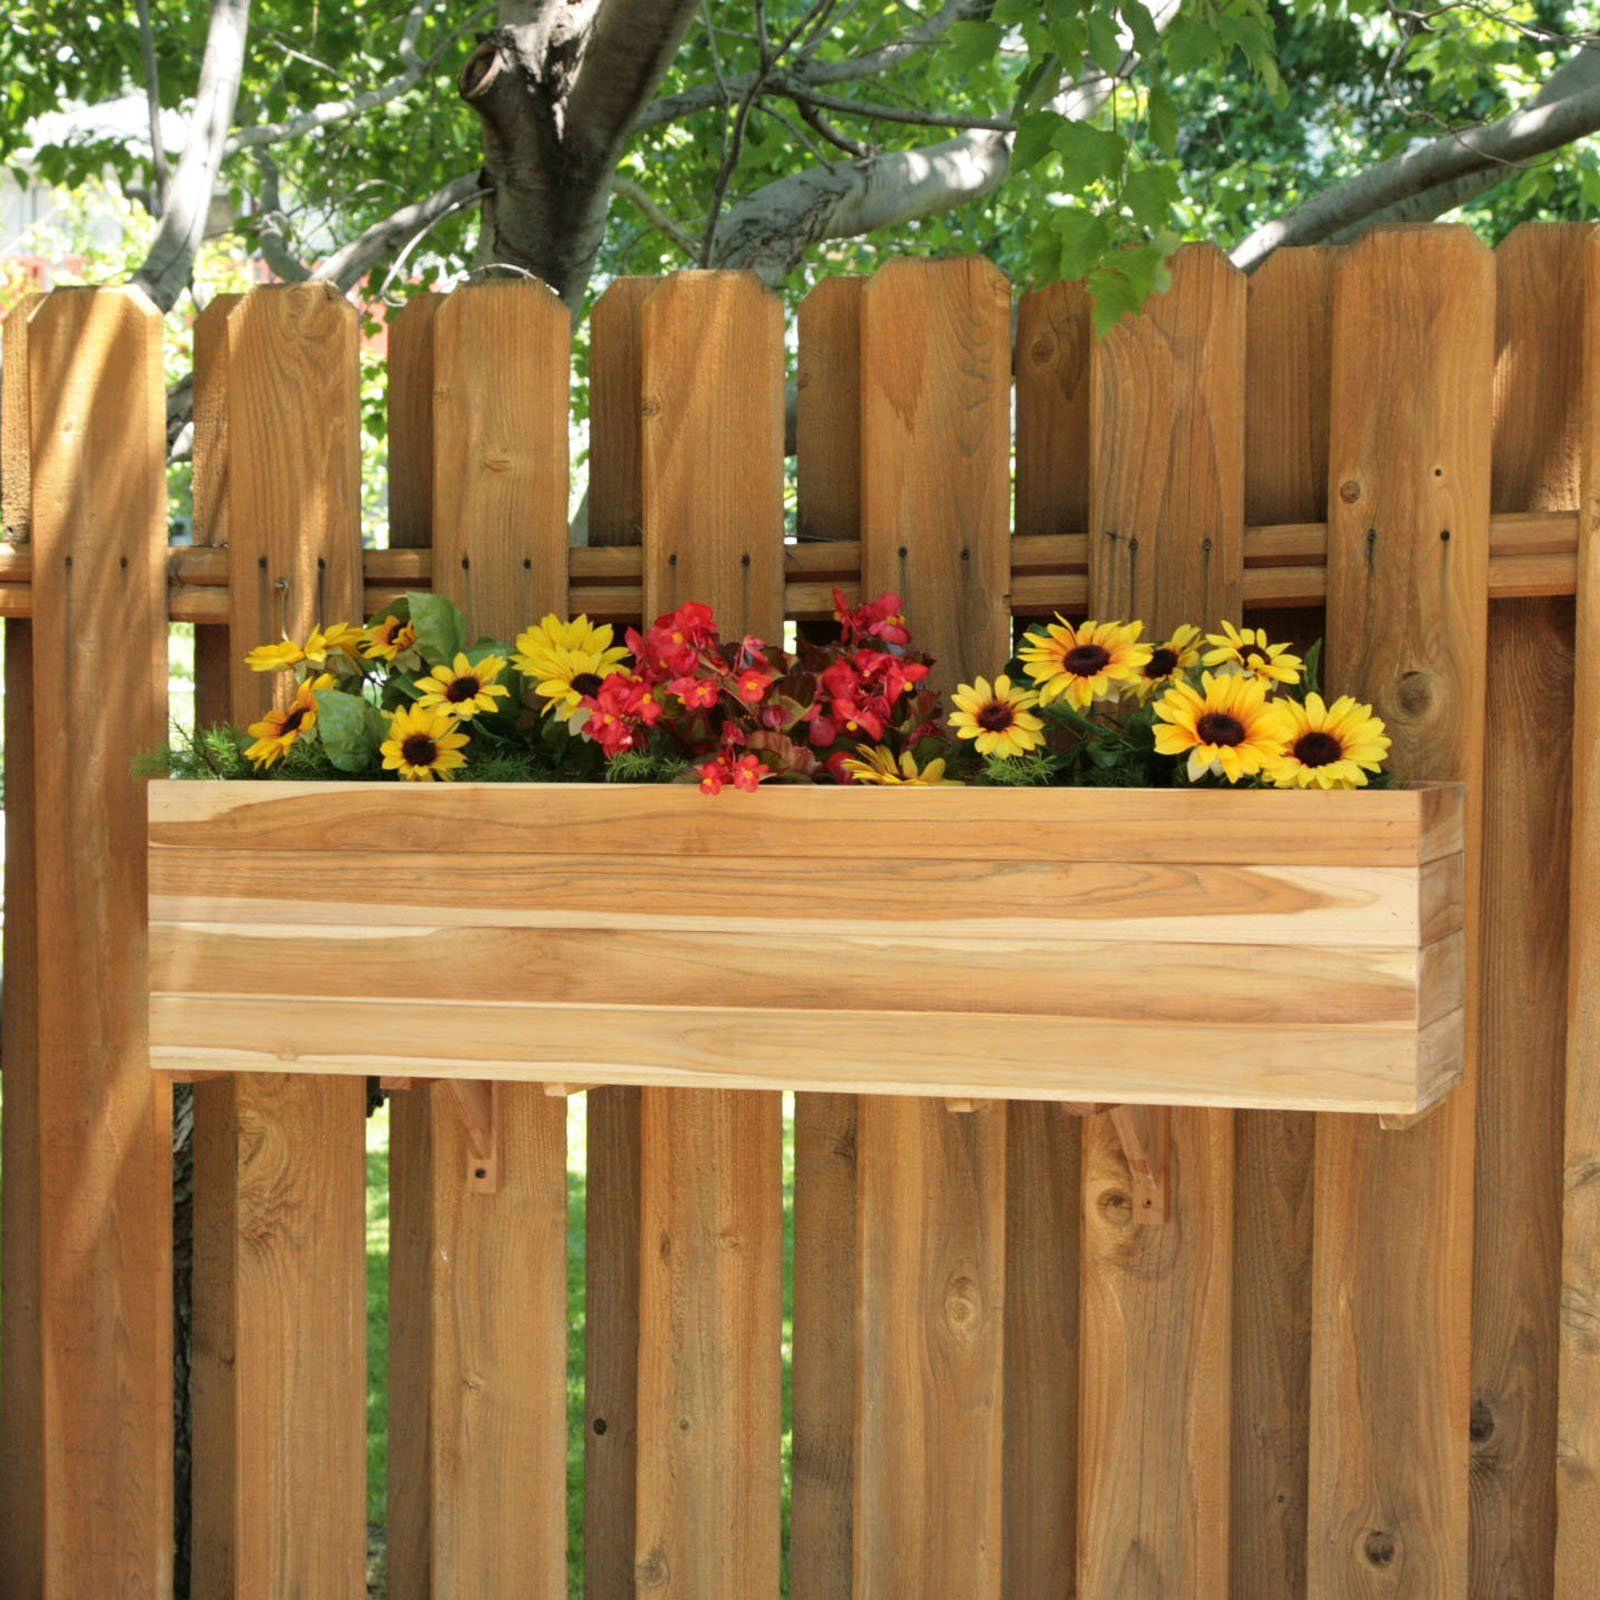 Garden and Patio, Floating Wooden Flower Box Design On ...